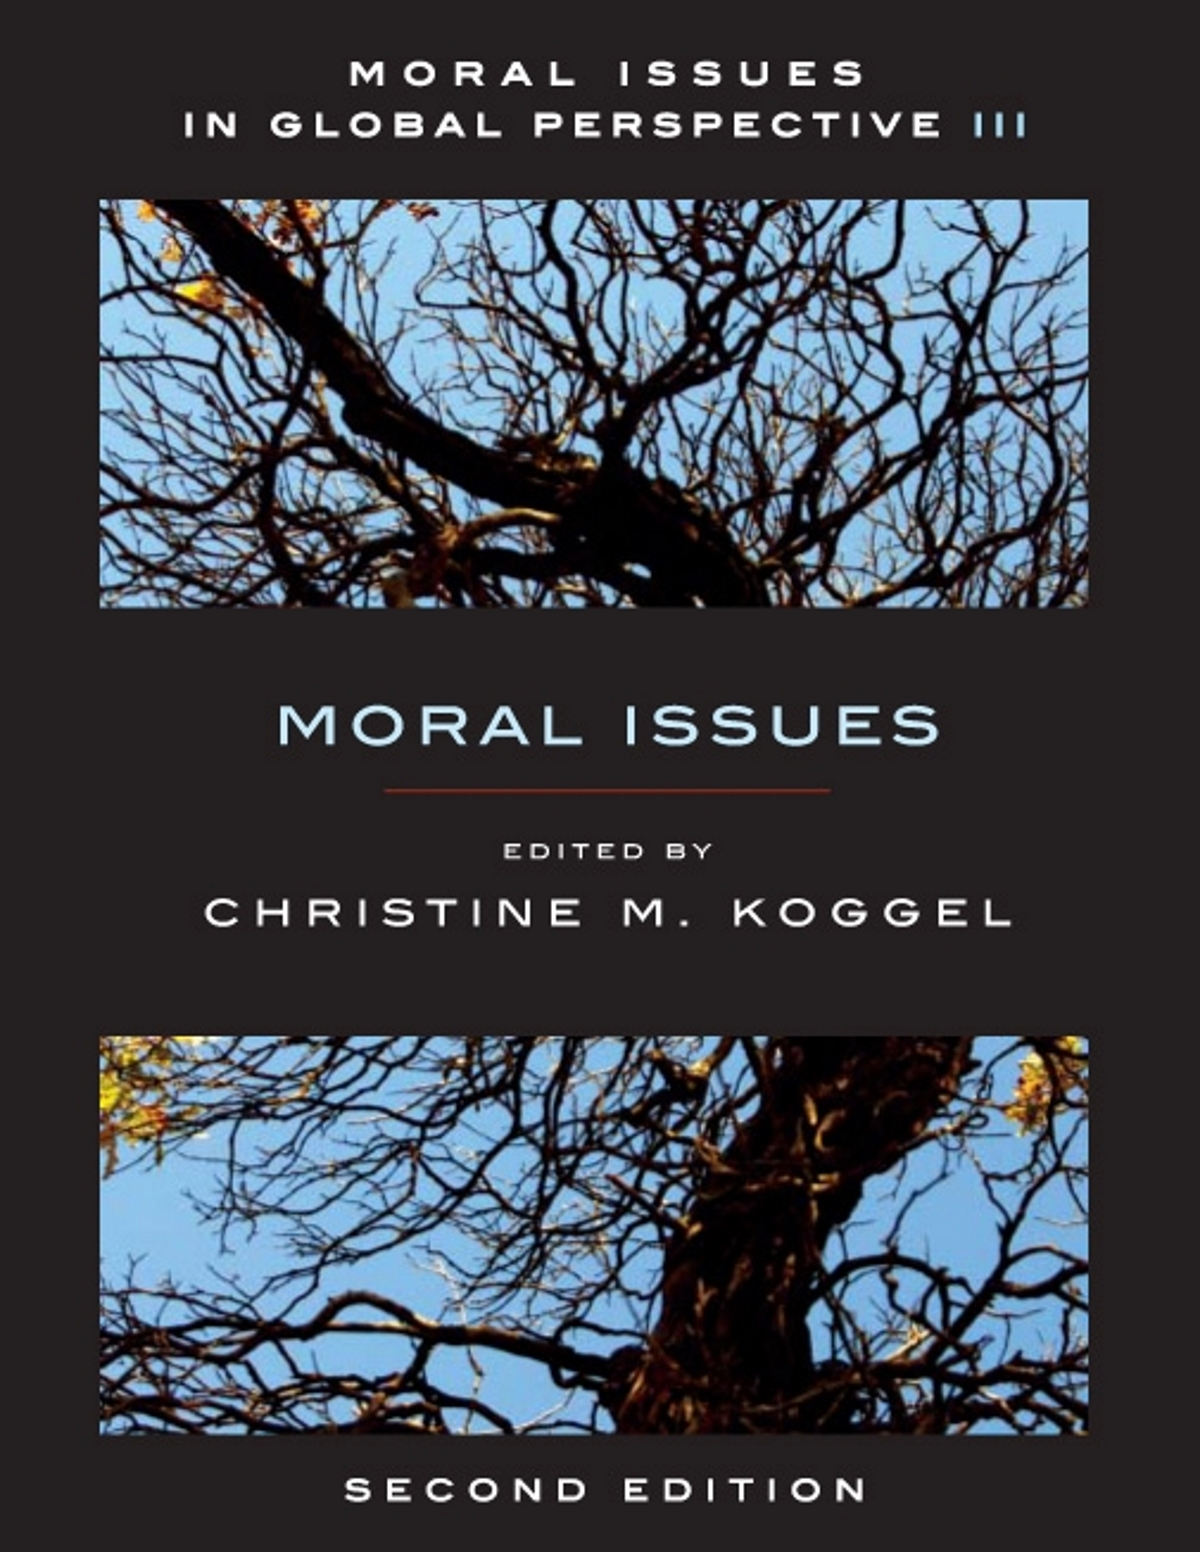 moral issues in global perspective volume moral issues moral issues in global perspective volume 3 moral issues second edition broadview press